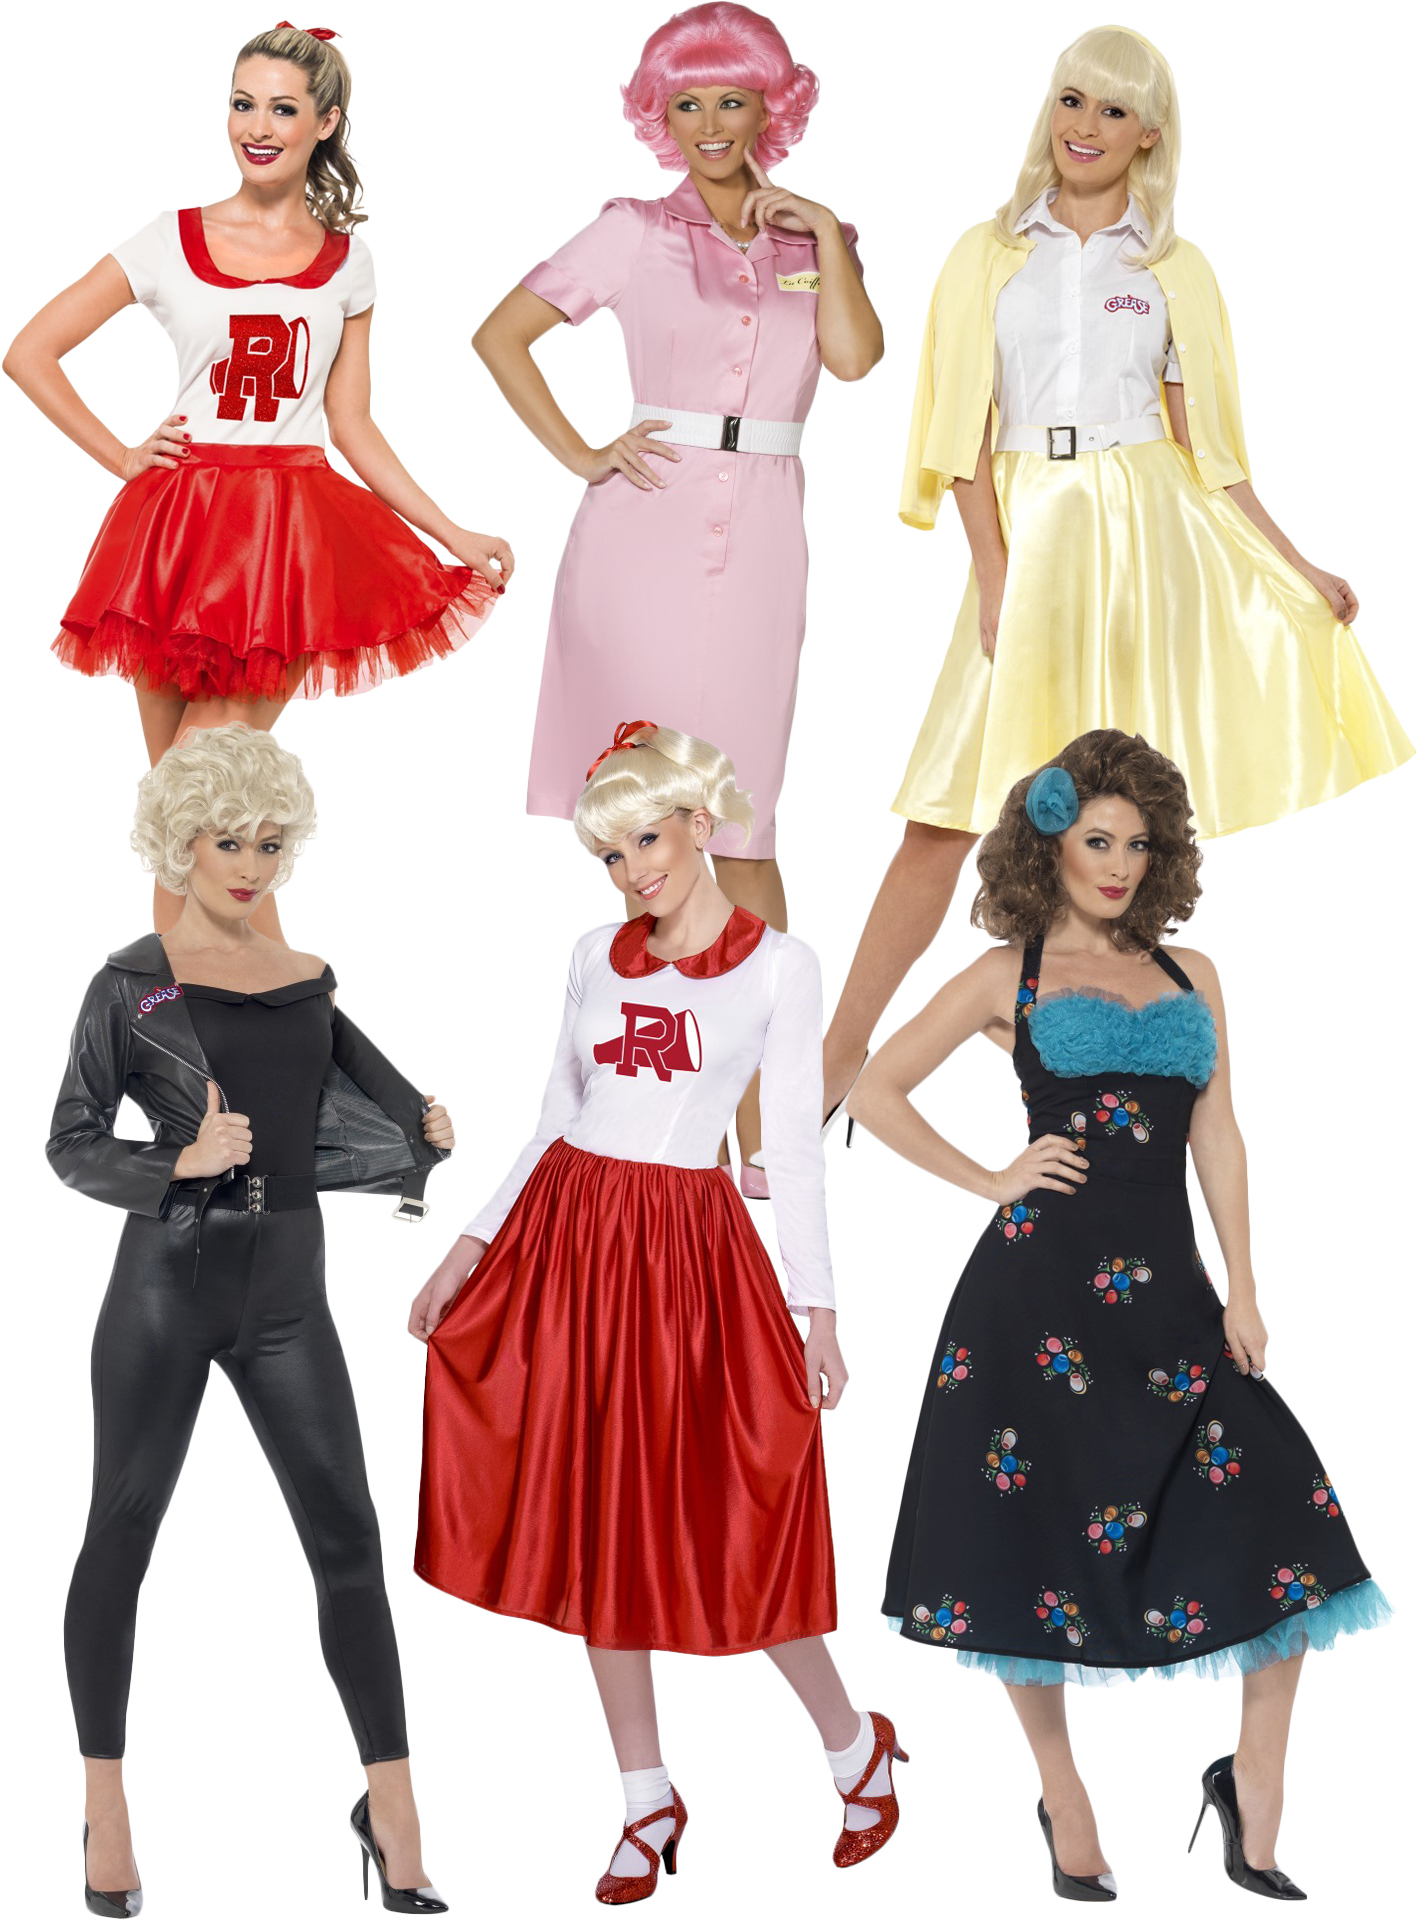 Details about Grease Ladies Fancy Dress 1950s Musical Film Rock n Roll  Womens Adults Costumes